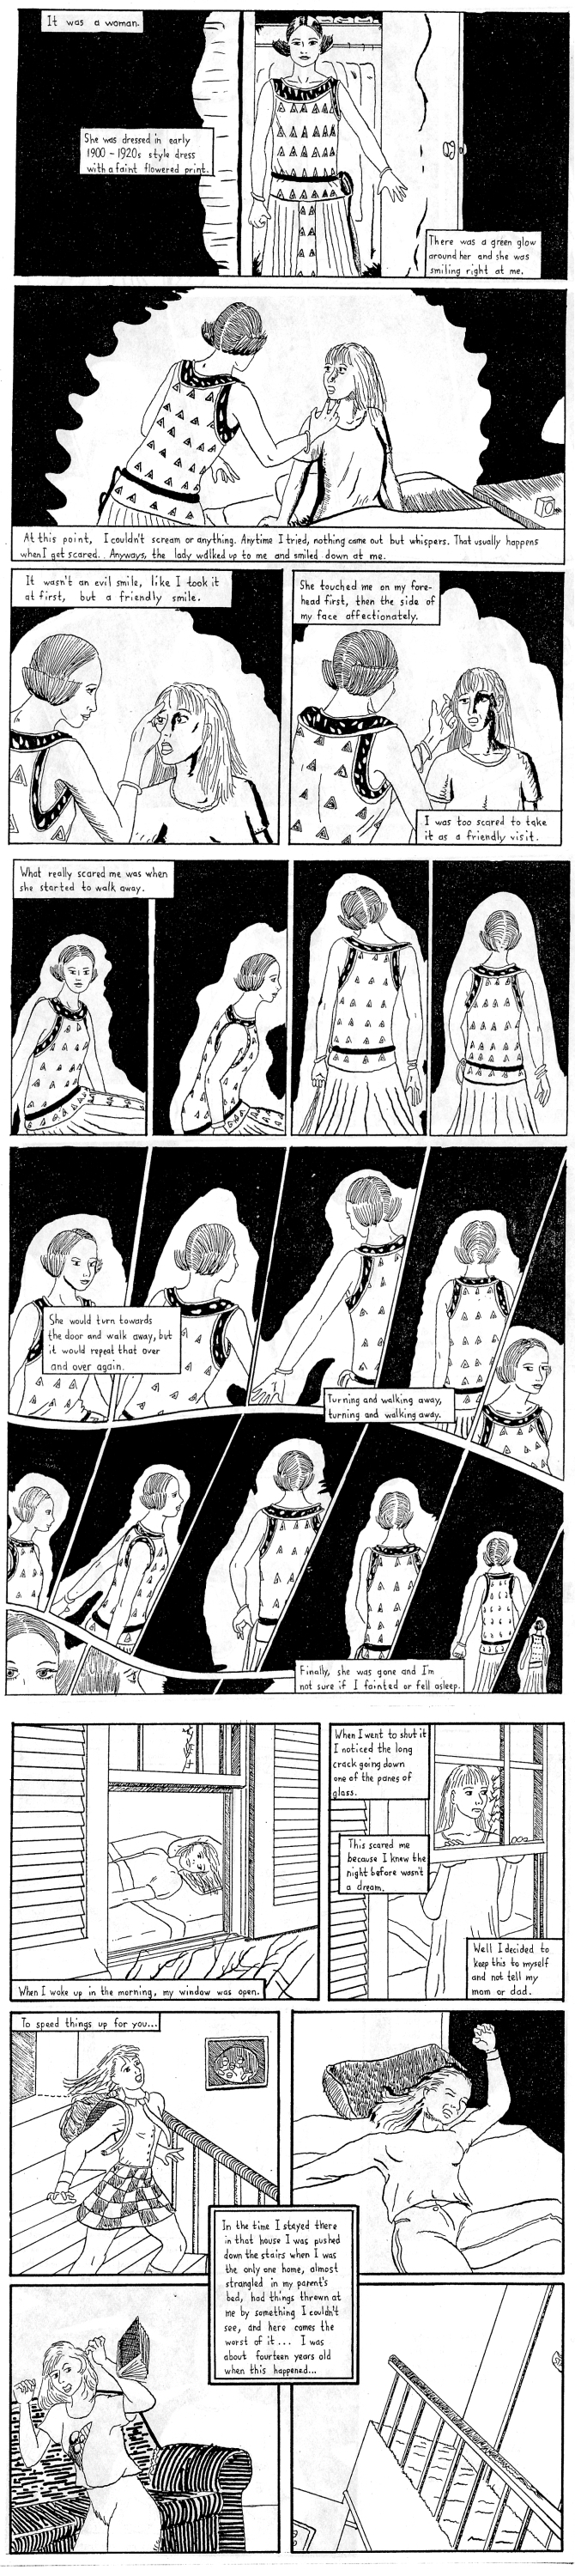 page two of comic ghost story of girl in connecticut